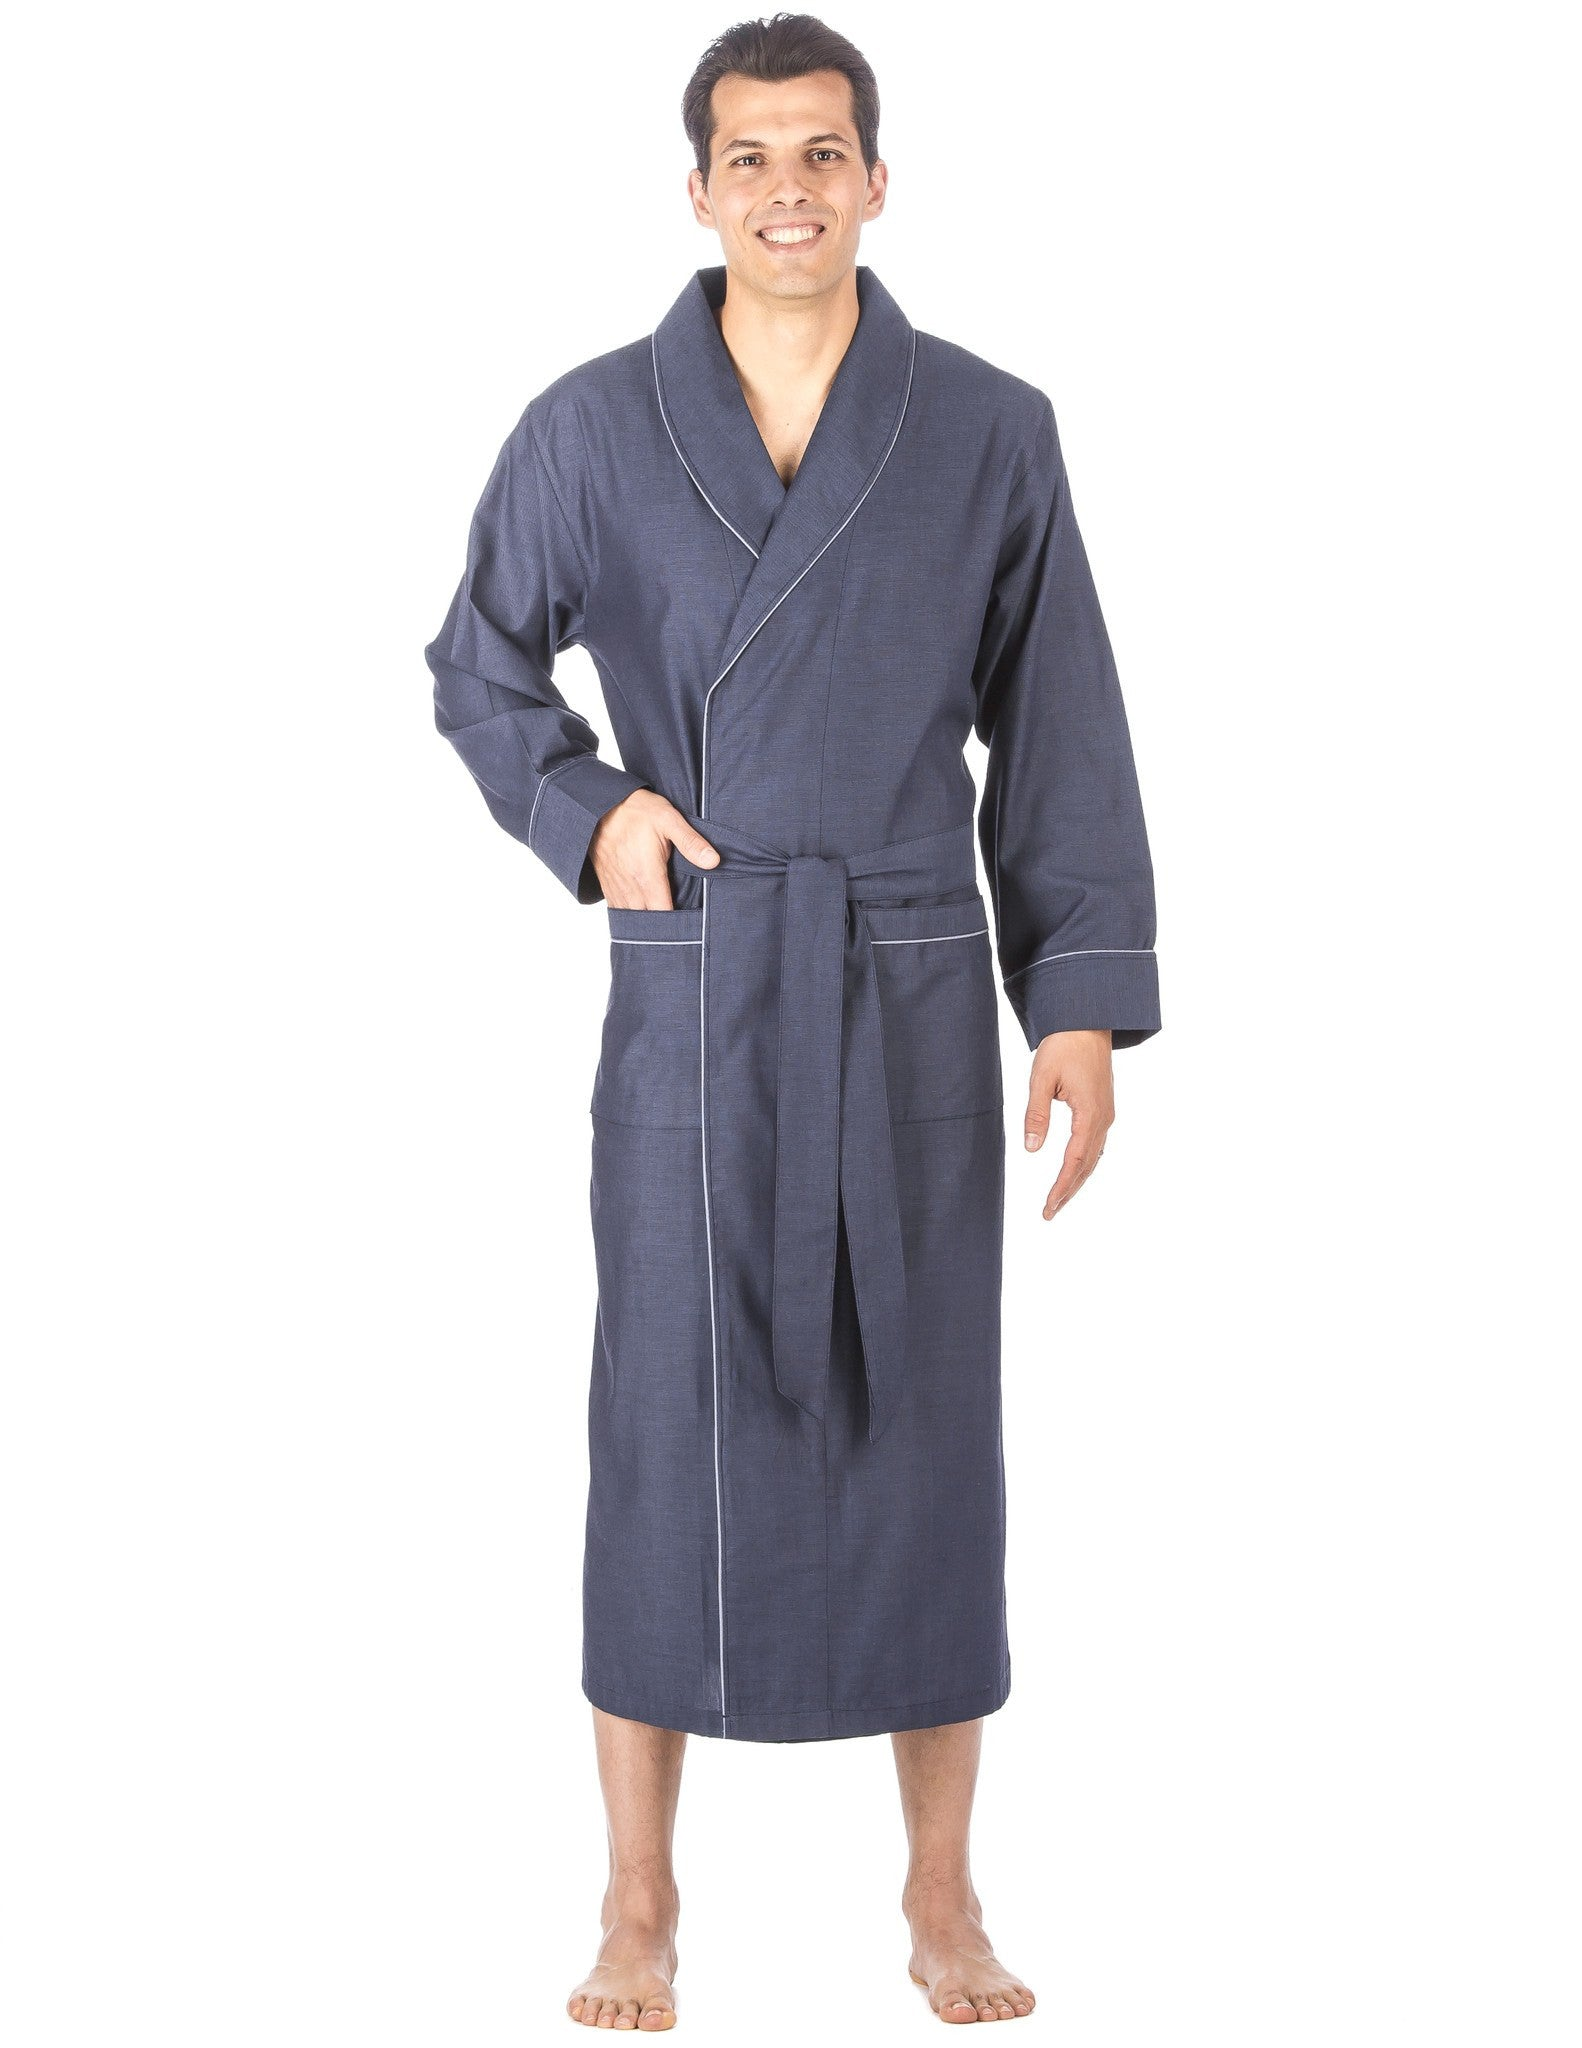 Men's Premium 100% Cotton Full-Length Robe